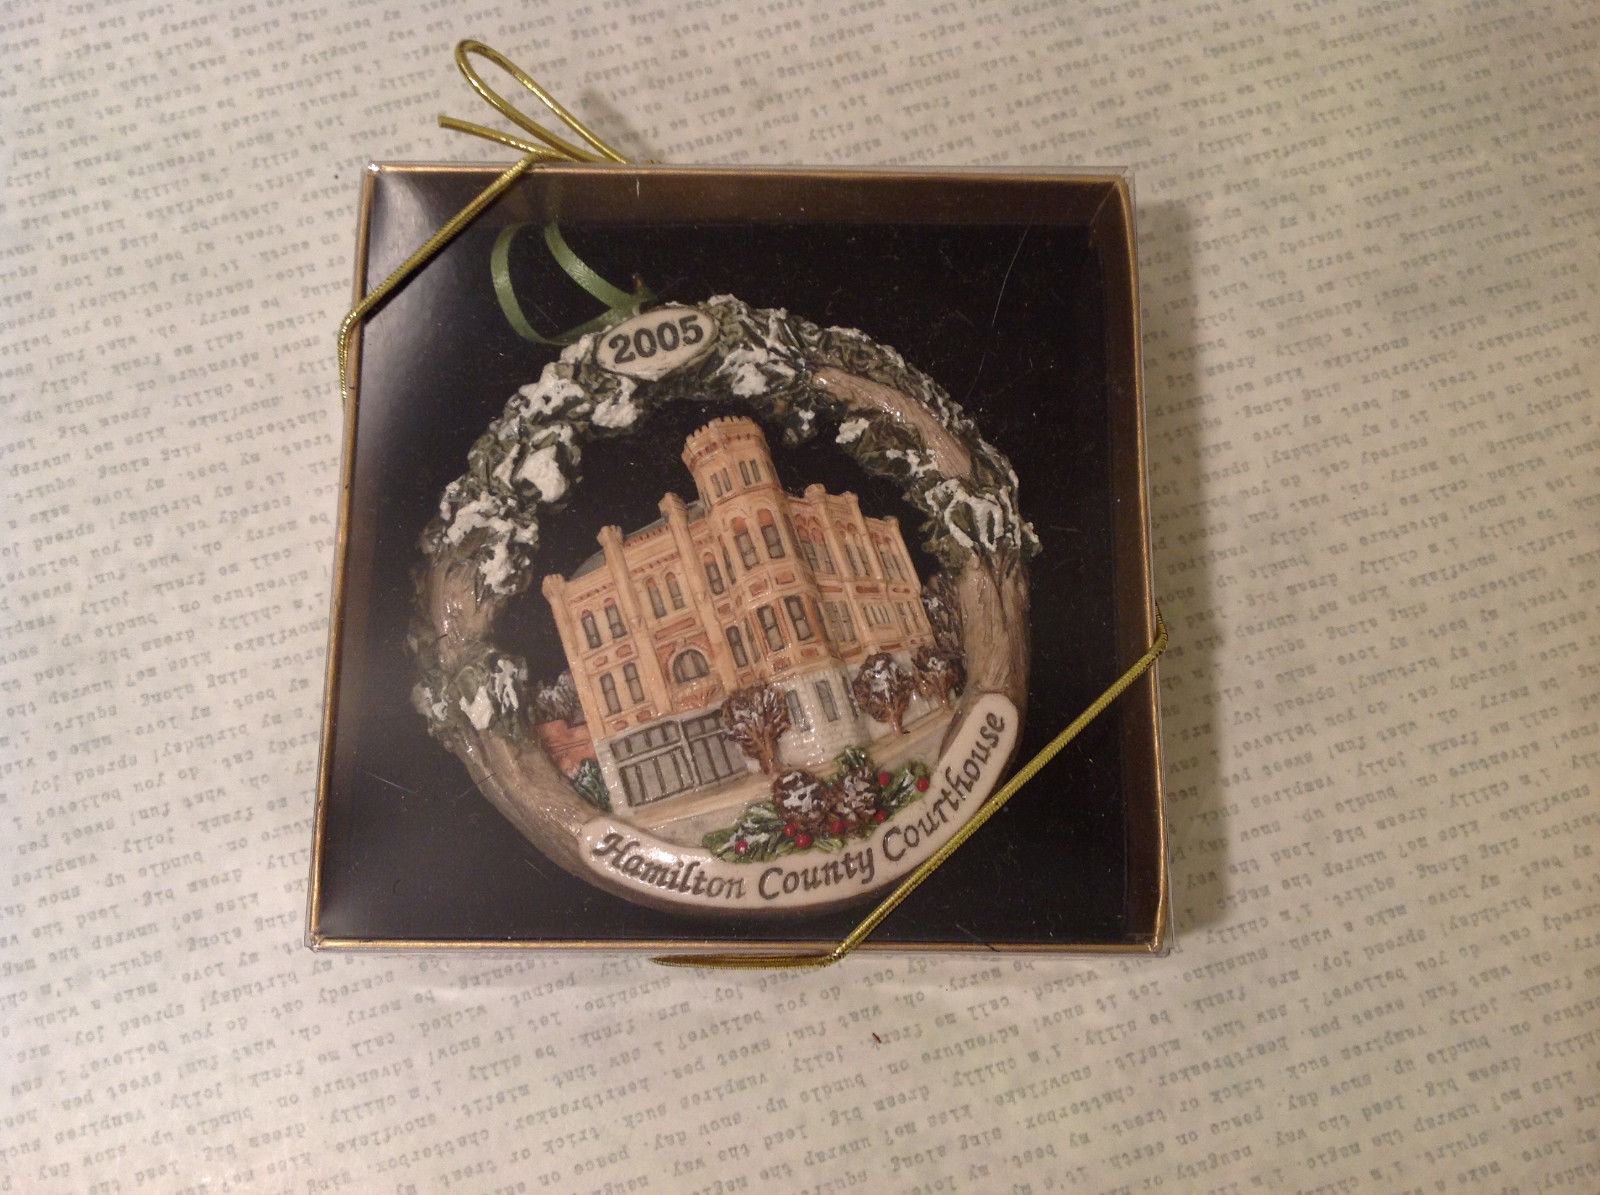 Handpainted Christmas Ornament Hamilton Country Courthouse 2005 Original Package